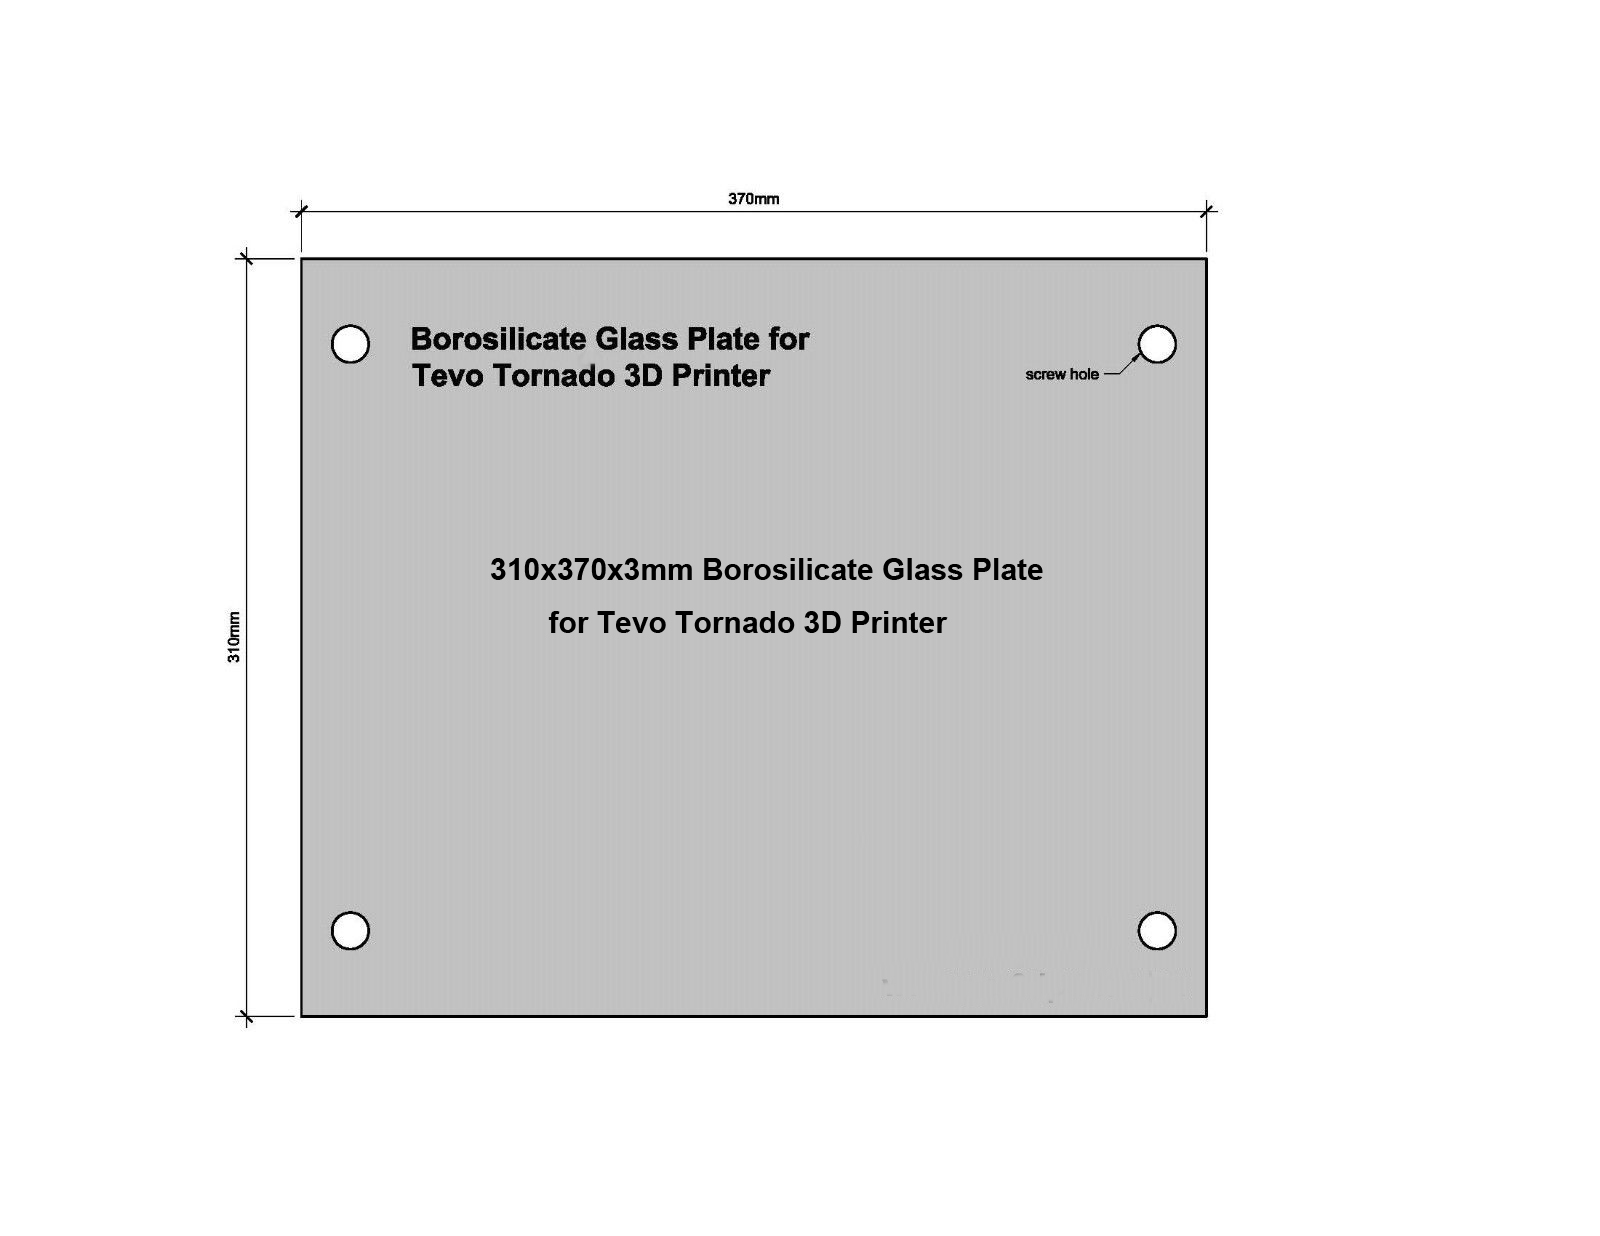 310mm x 370mm x 3mm Borosilicate Glass Plate/Bed with Screw Holes for Tevo Tornado 3D Printer (Packed in Wooden box)310mm x 370mm x 3mm Borosilicate Glass Plate/Bed with Screw Holes for Tevo Tornado 3D Printer (Packed in Wooden box)